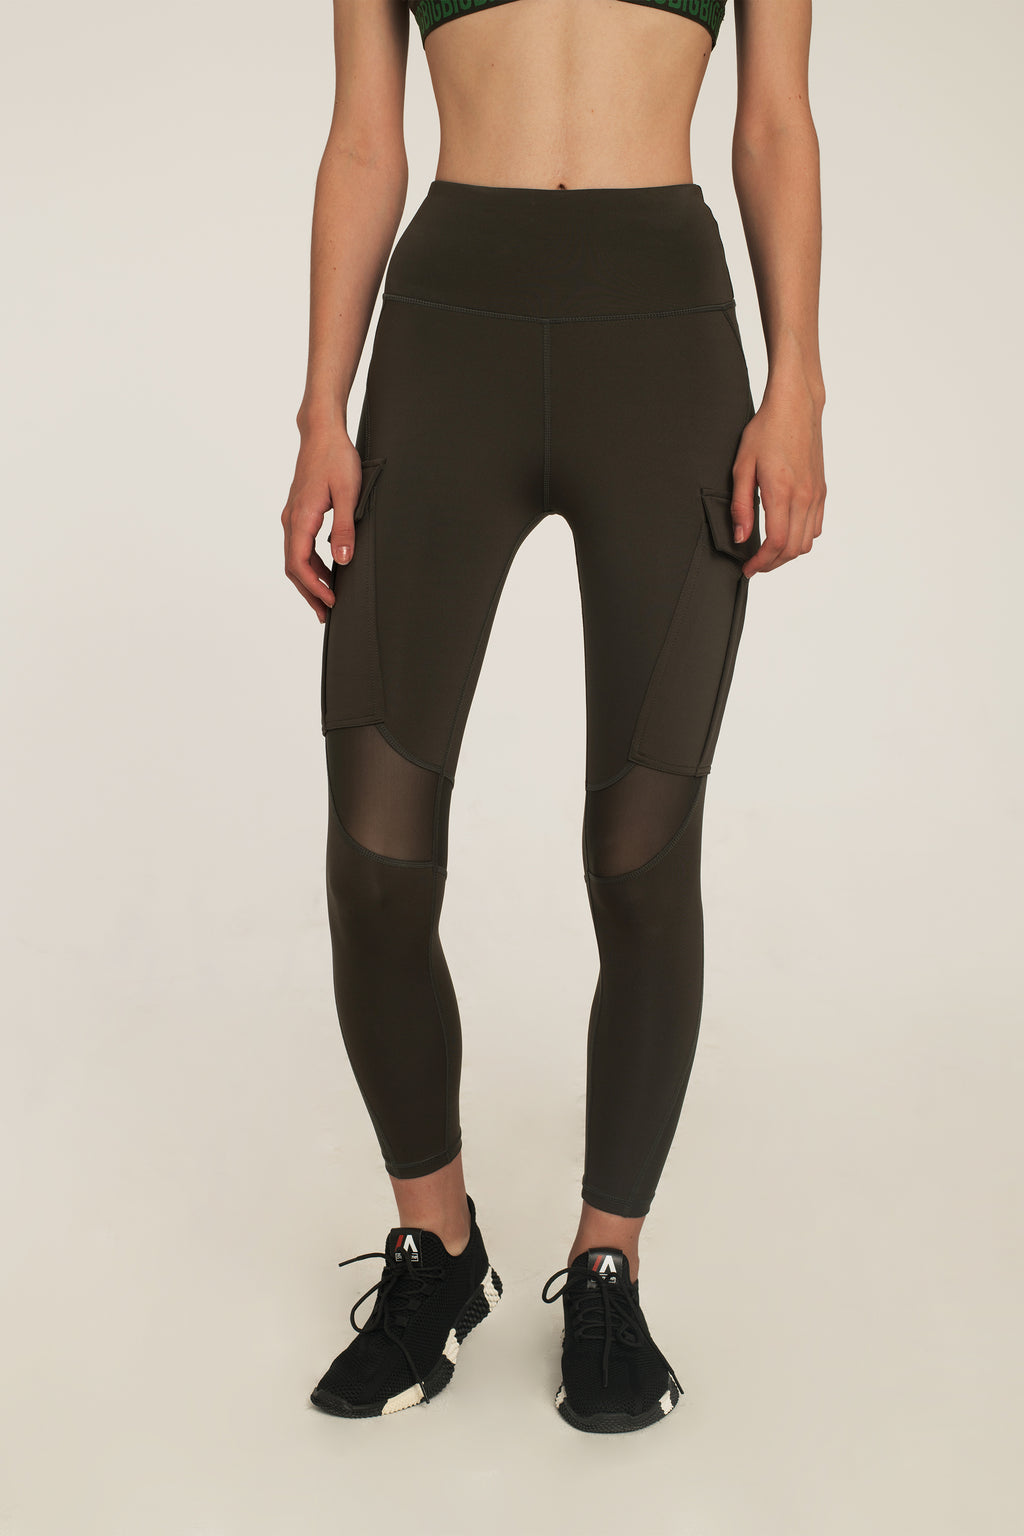 Army Green Mesh Utility Leggings